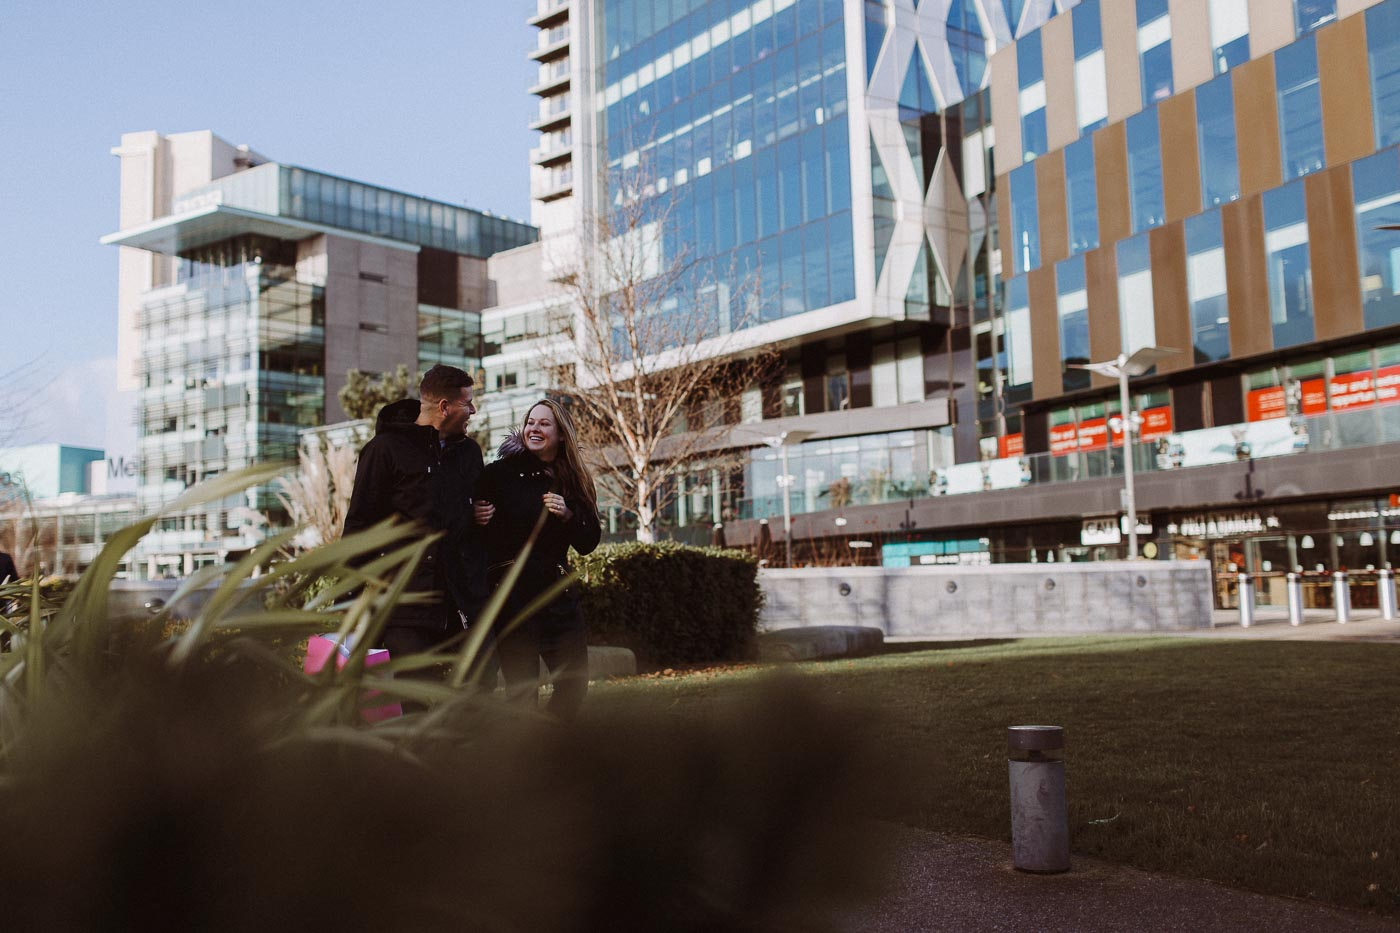 couple laughing and holding hands with media city buildings in the background